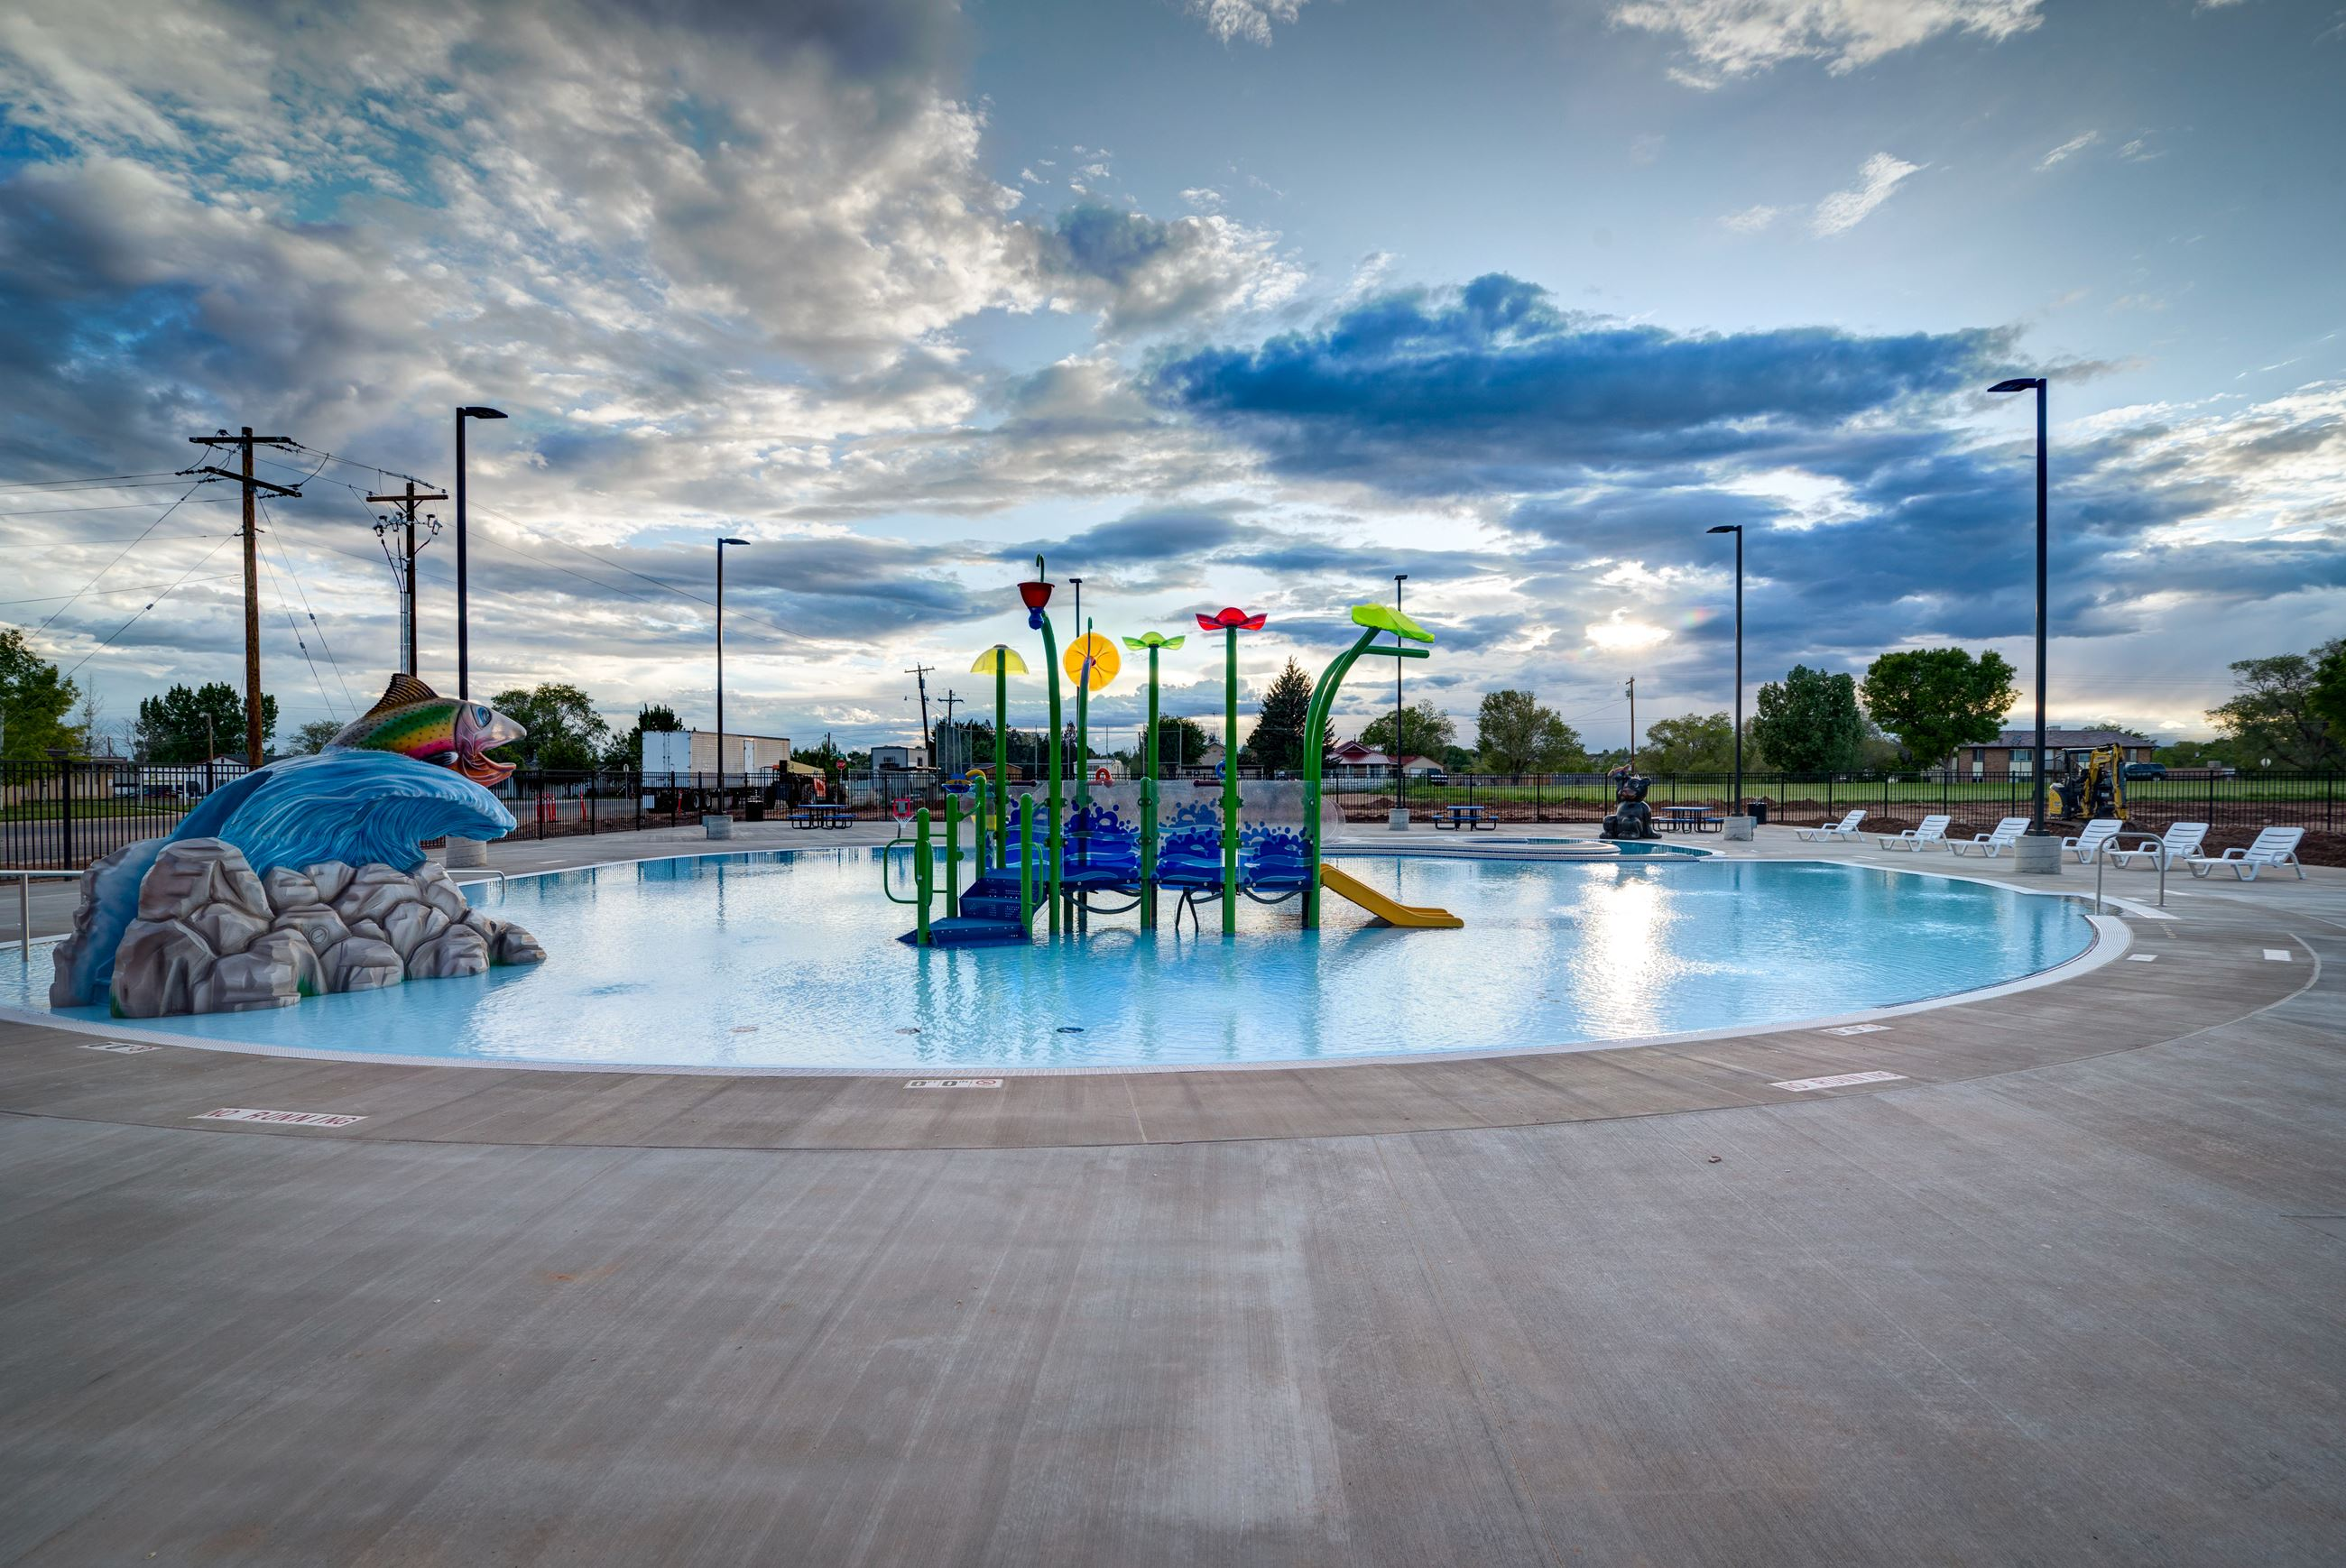 Roosevelt Aquatic Center photo